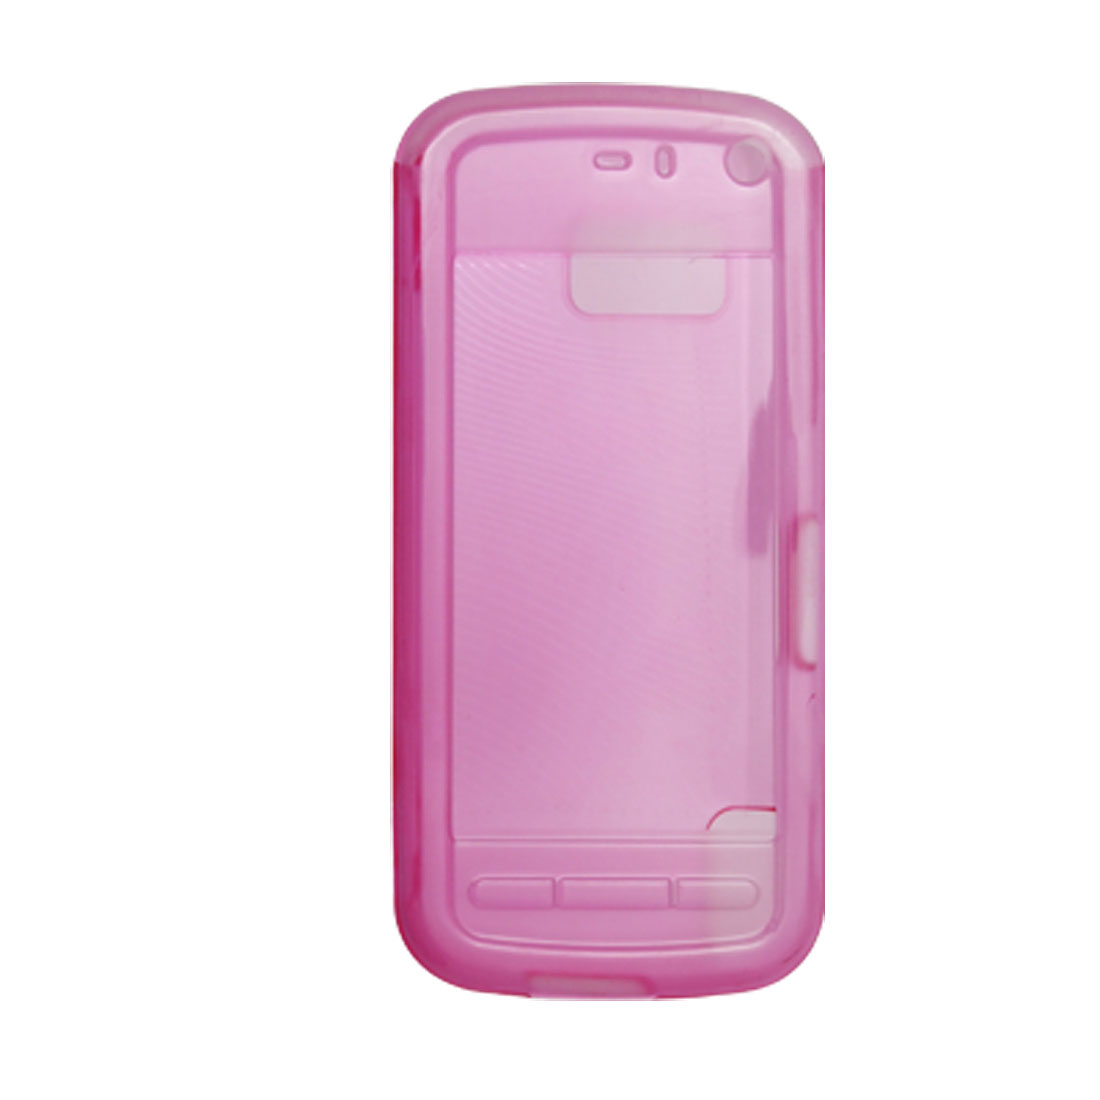 Pink Soft Plastic Protector Cover Case for Nokia 5800